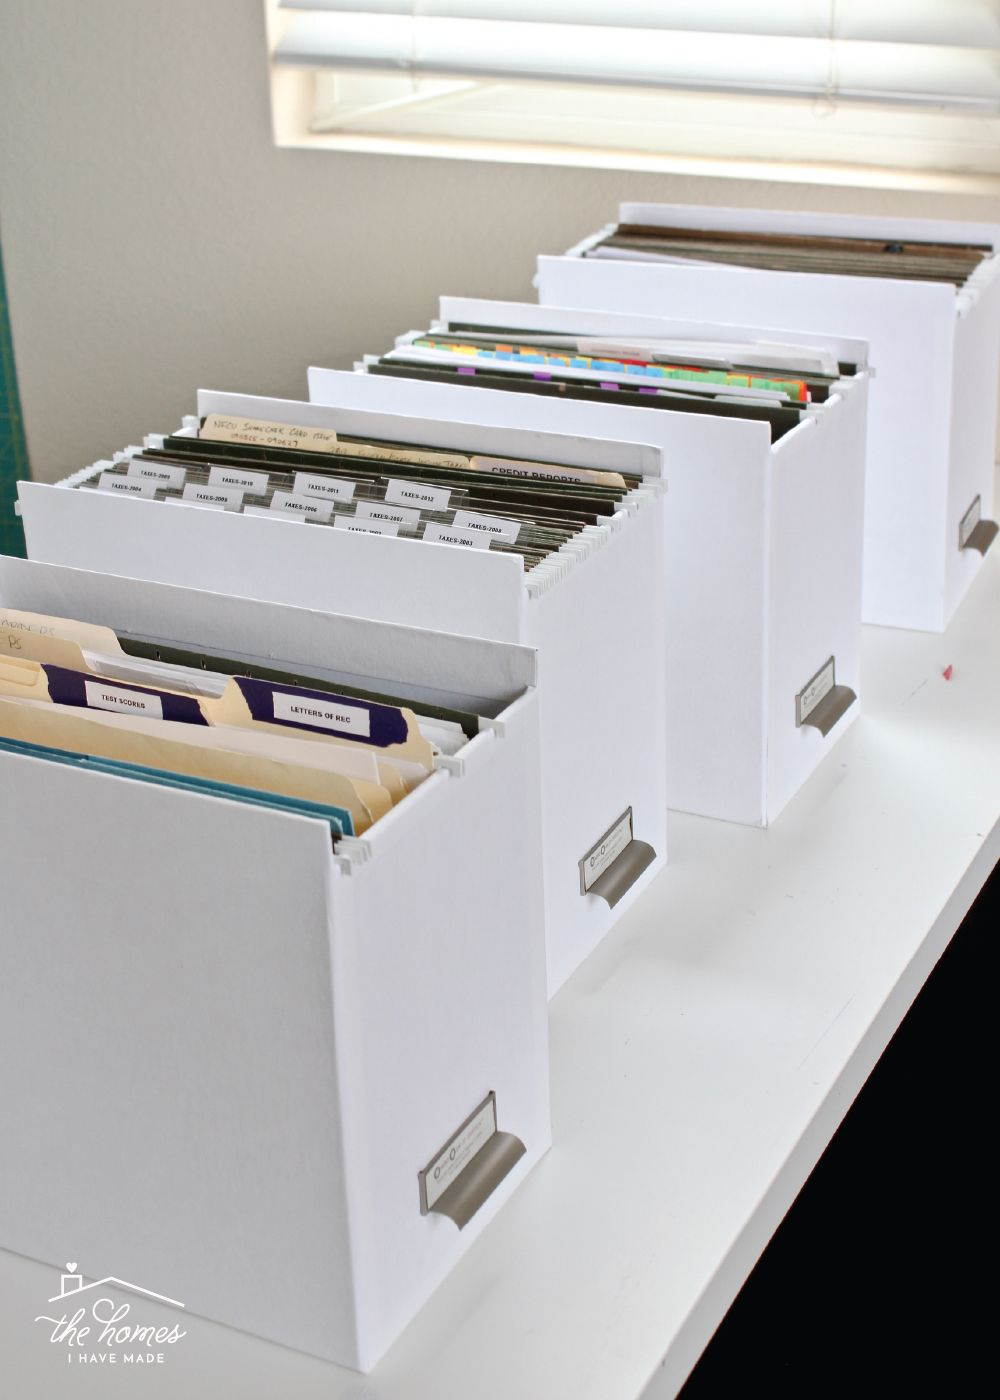 How To Organize Paperwork Part 3 Filing Strategies The Homes I Have Made Organizing Paperwork Filing System Office Organization At Work Home Filing System